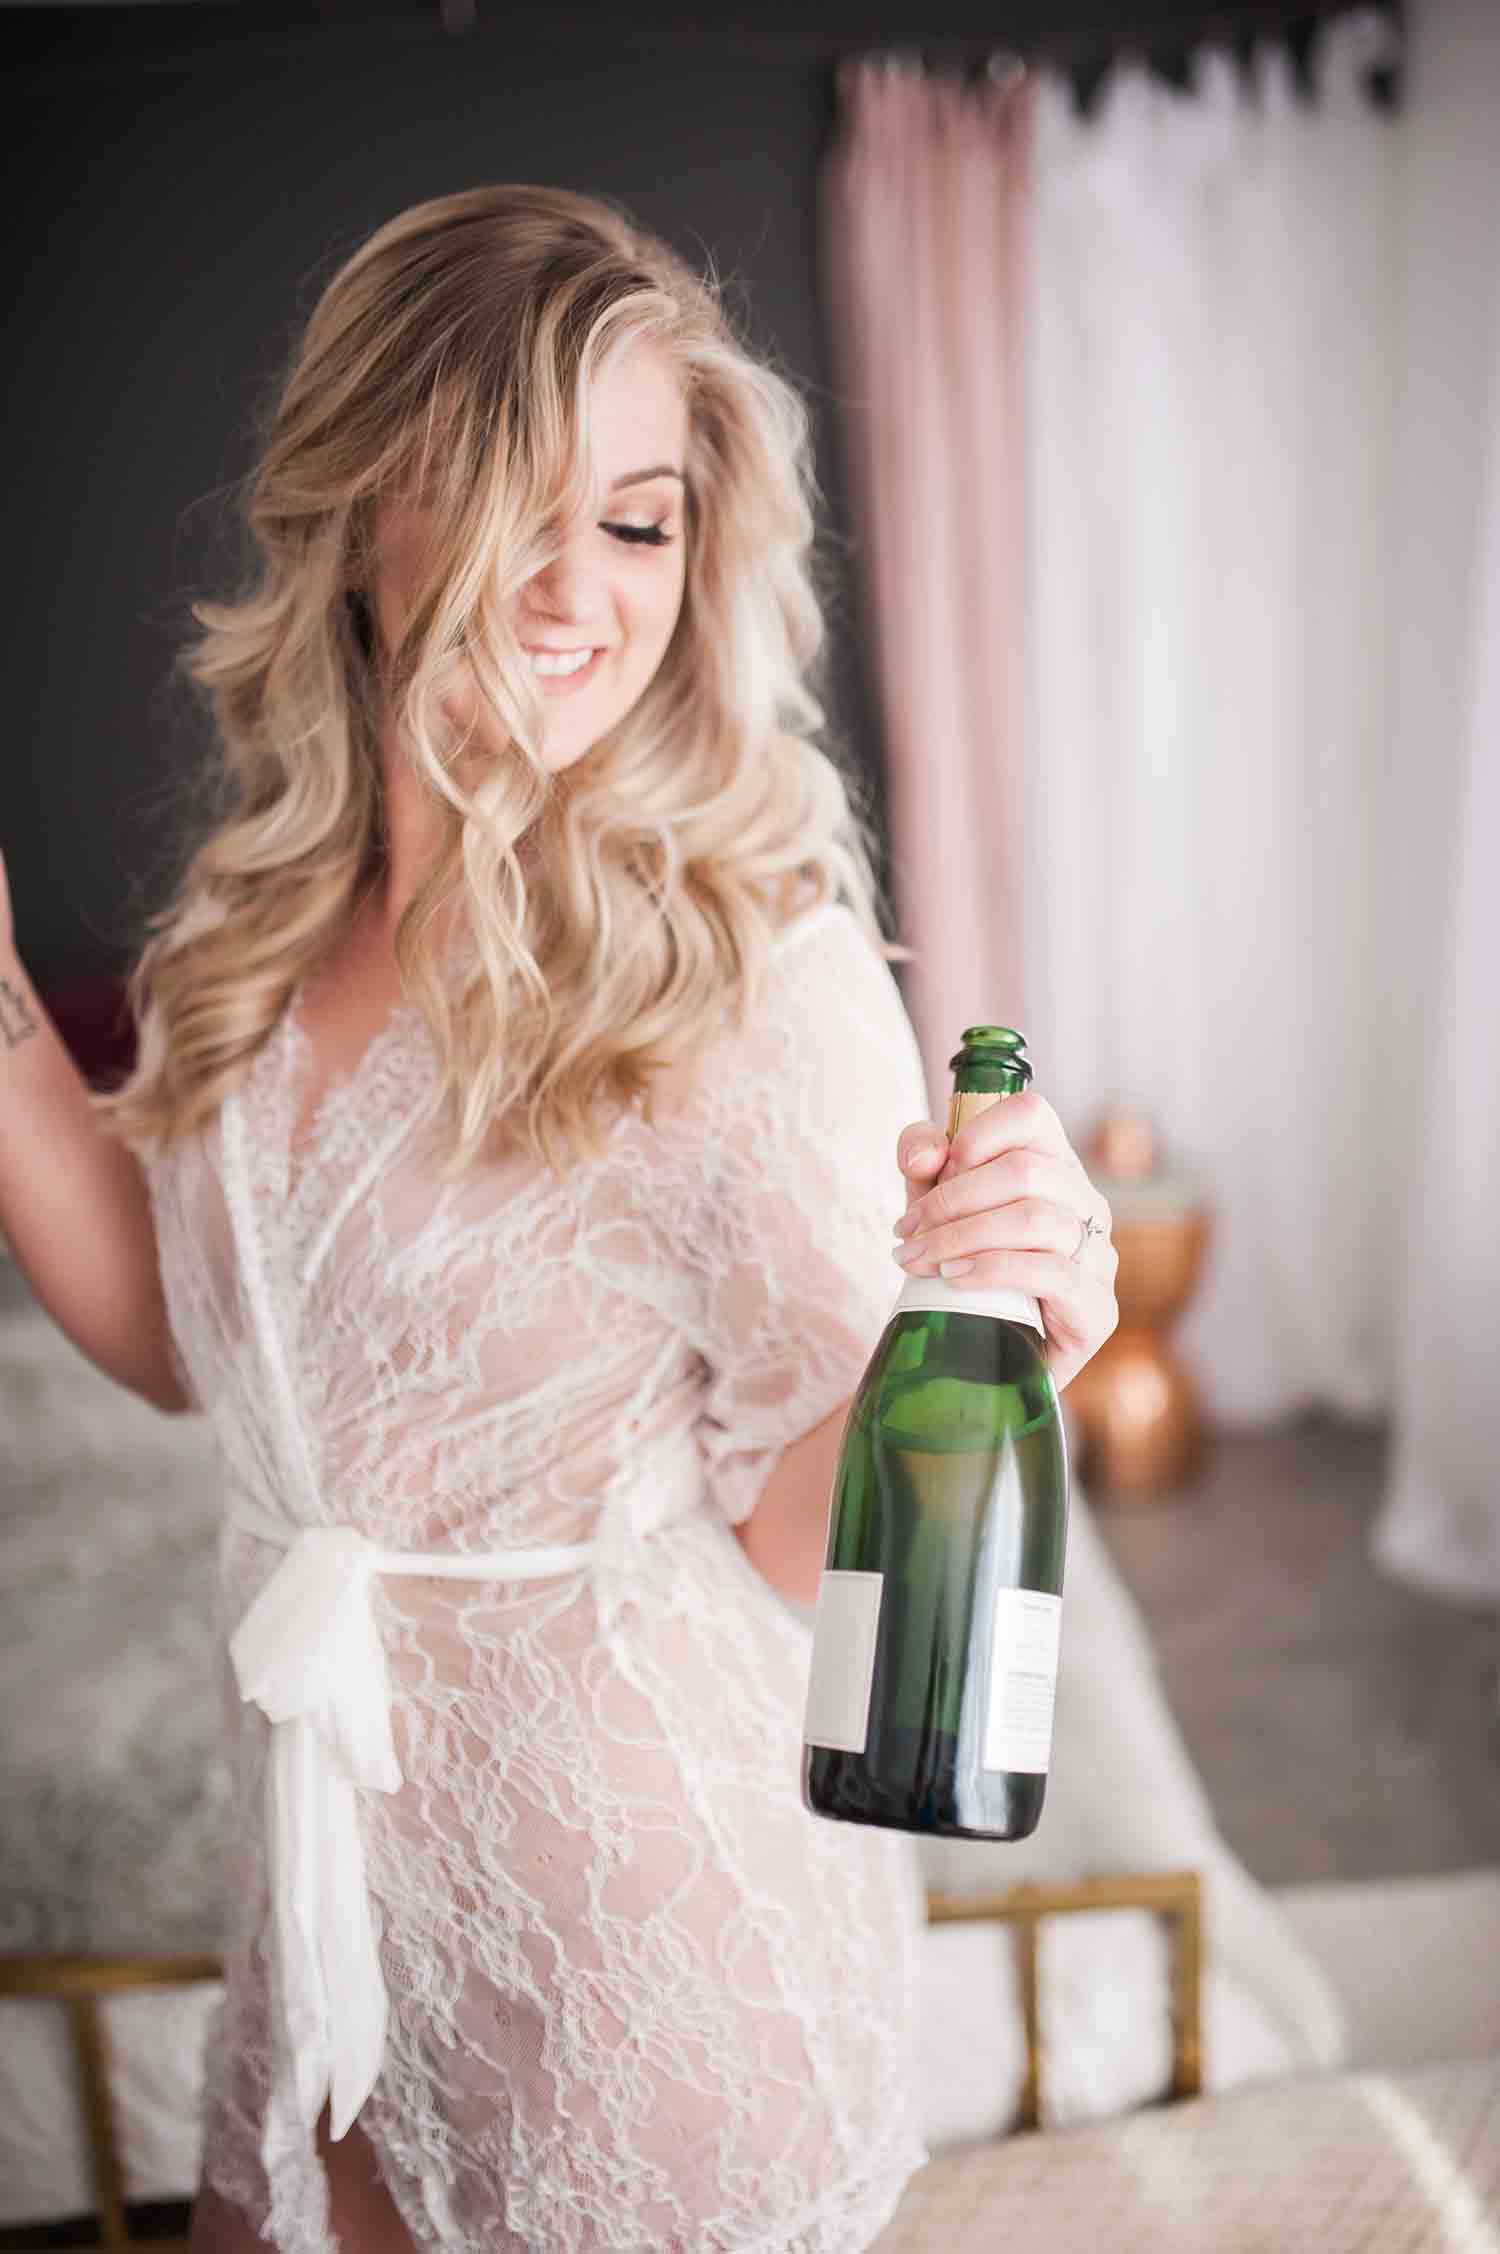 Gorgeous Woman Popping a Bottle of Champaign in an Elegant Silk Robe During Stephanie Marie Photography Iowa City Boudoir Session